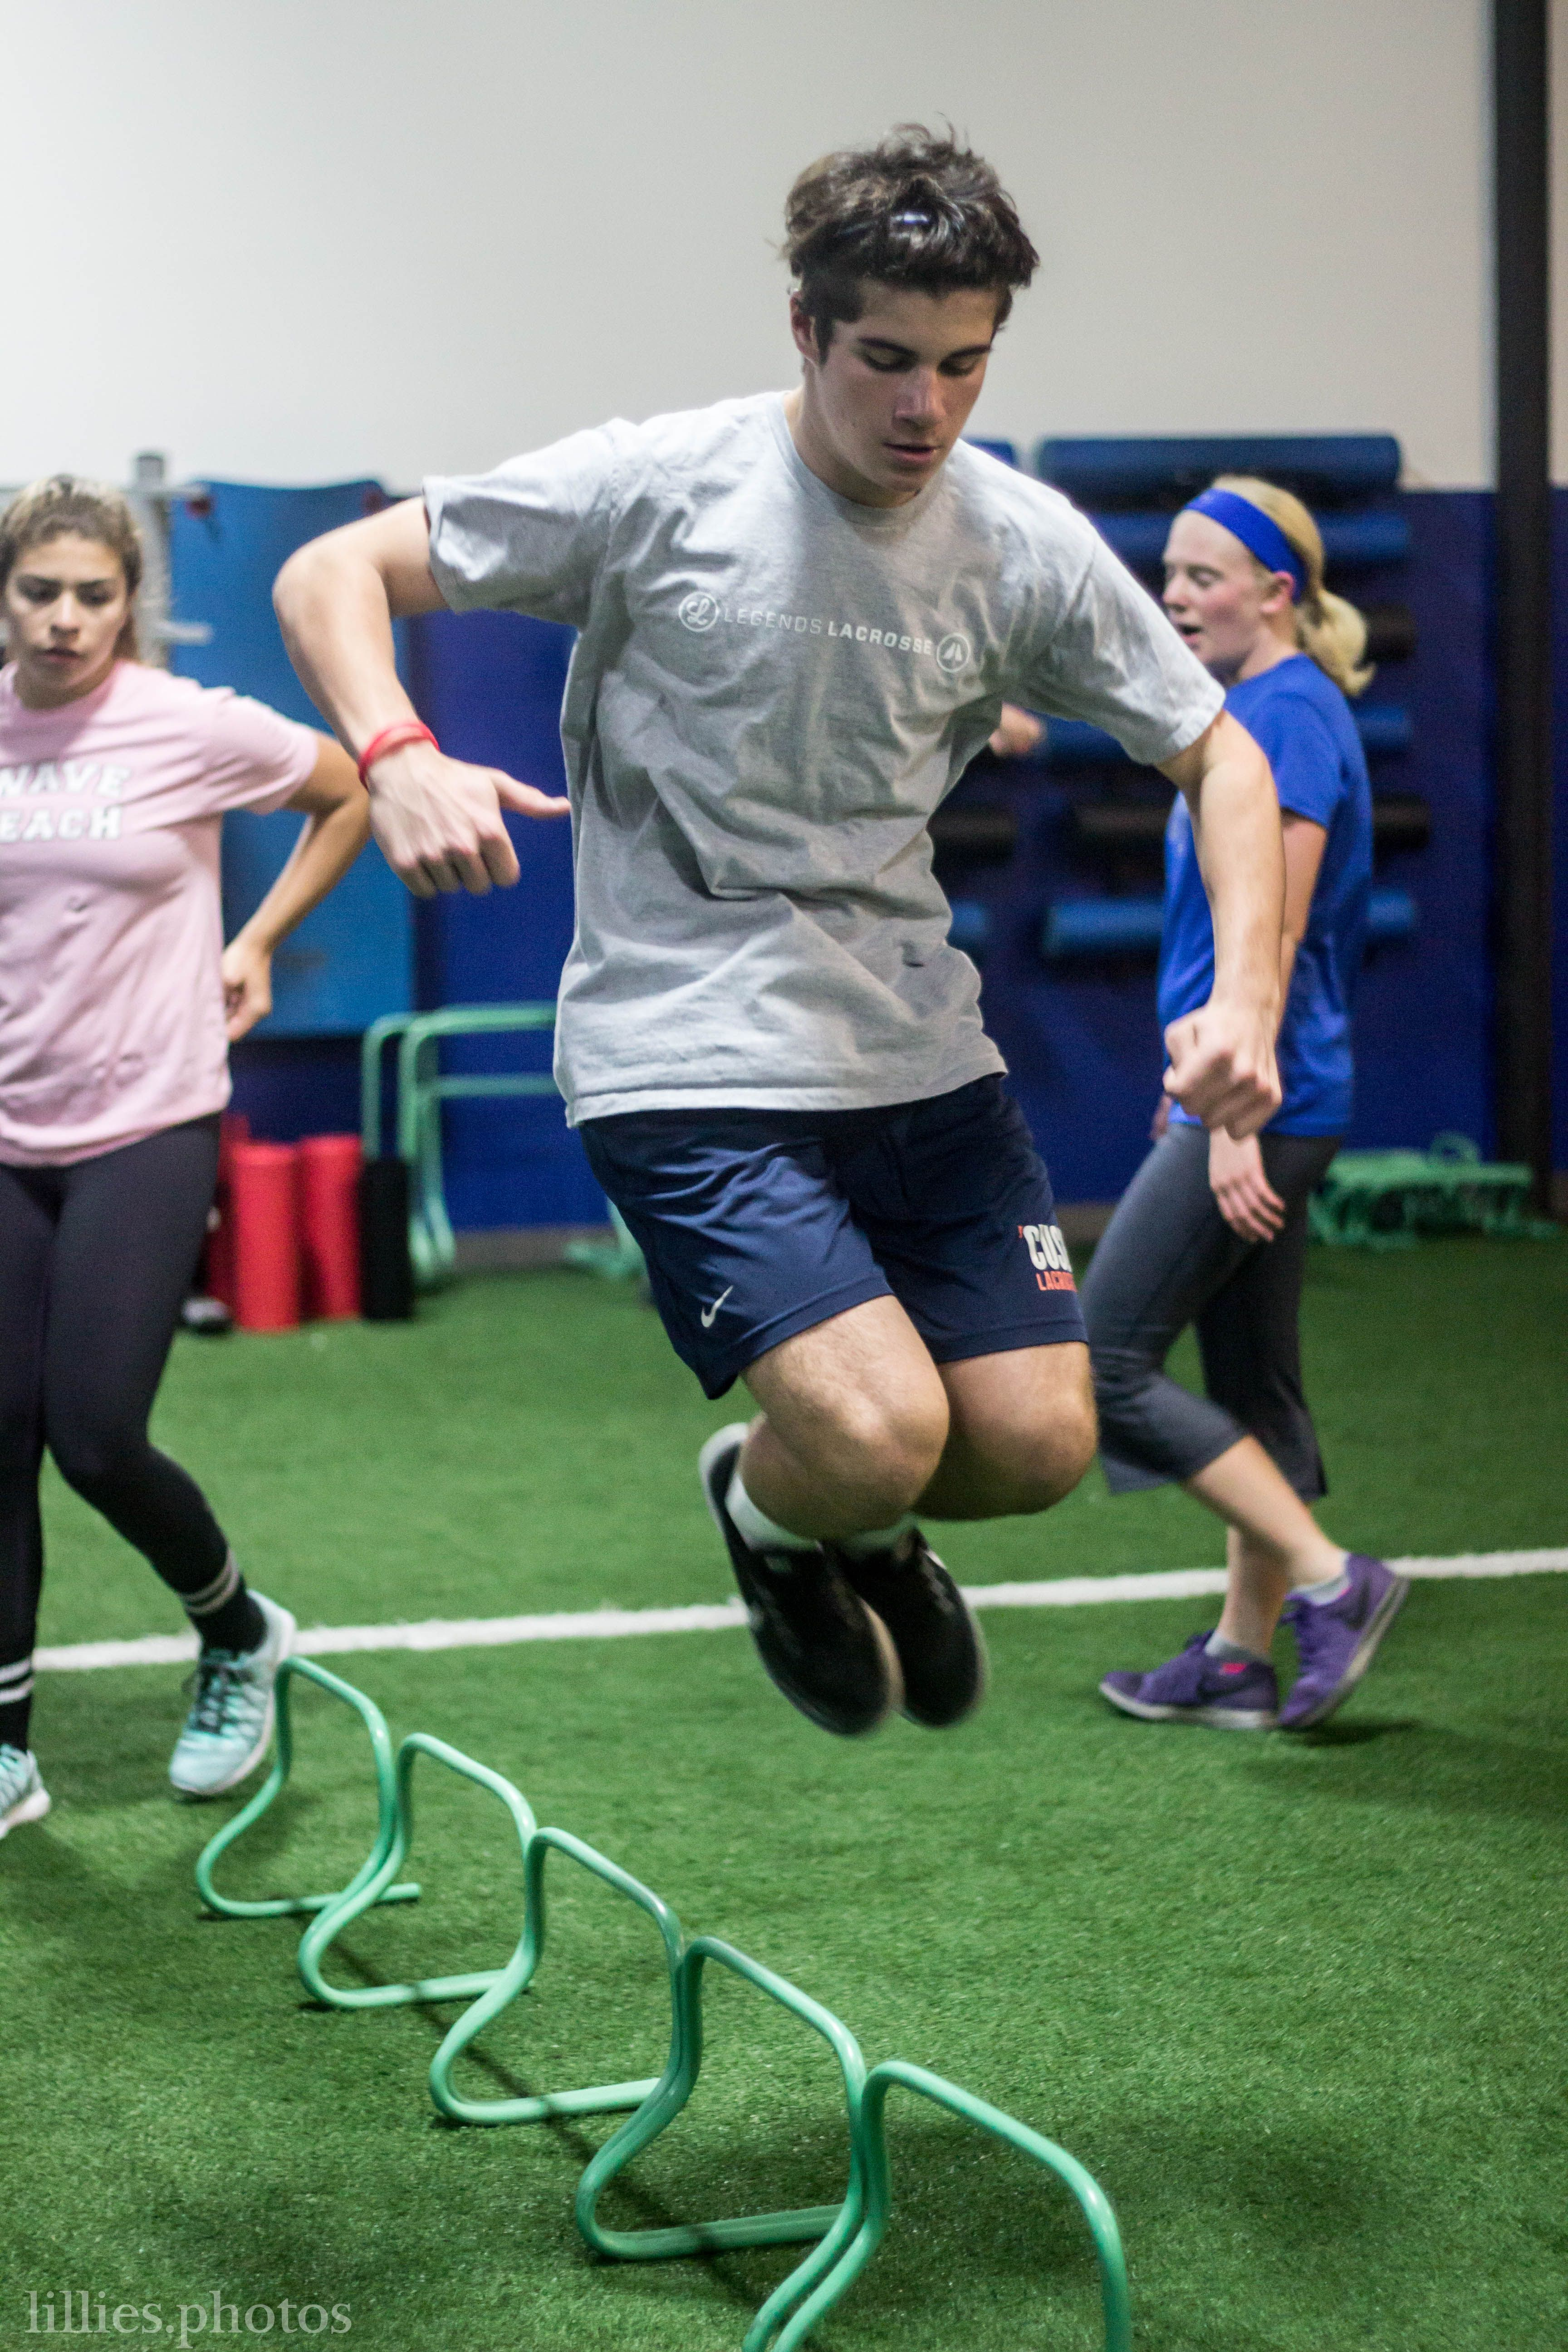 Multidirectional hops are excellent for injury prevention